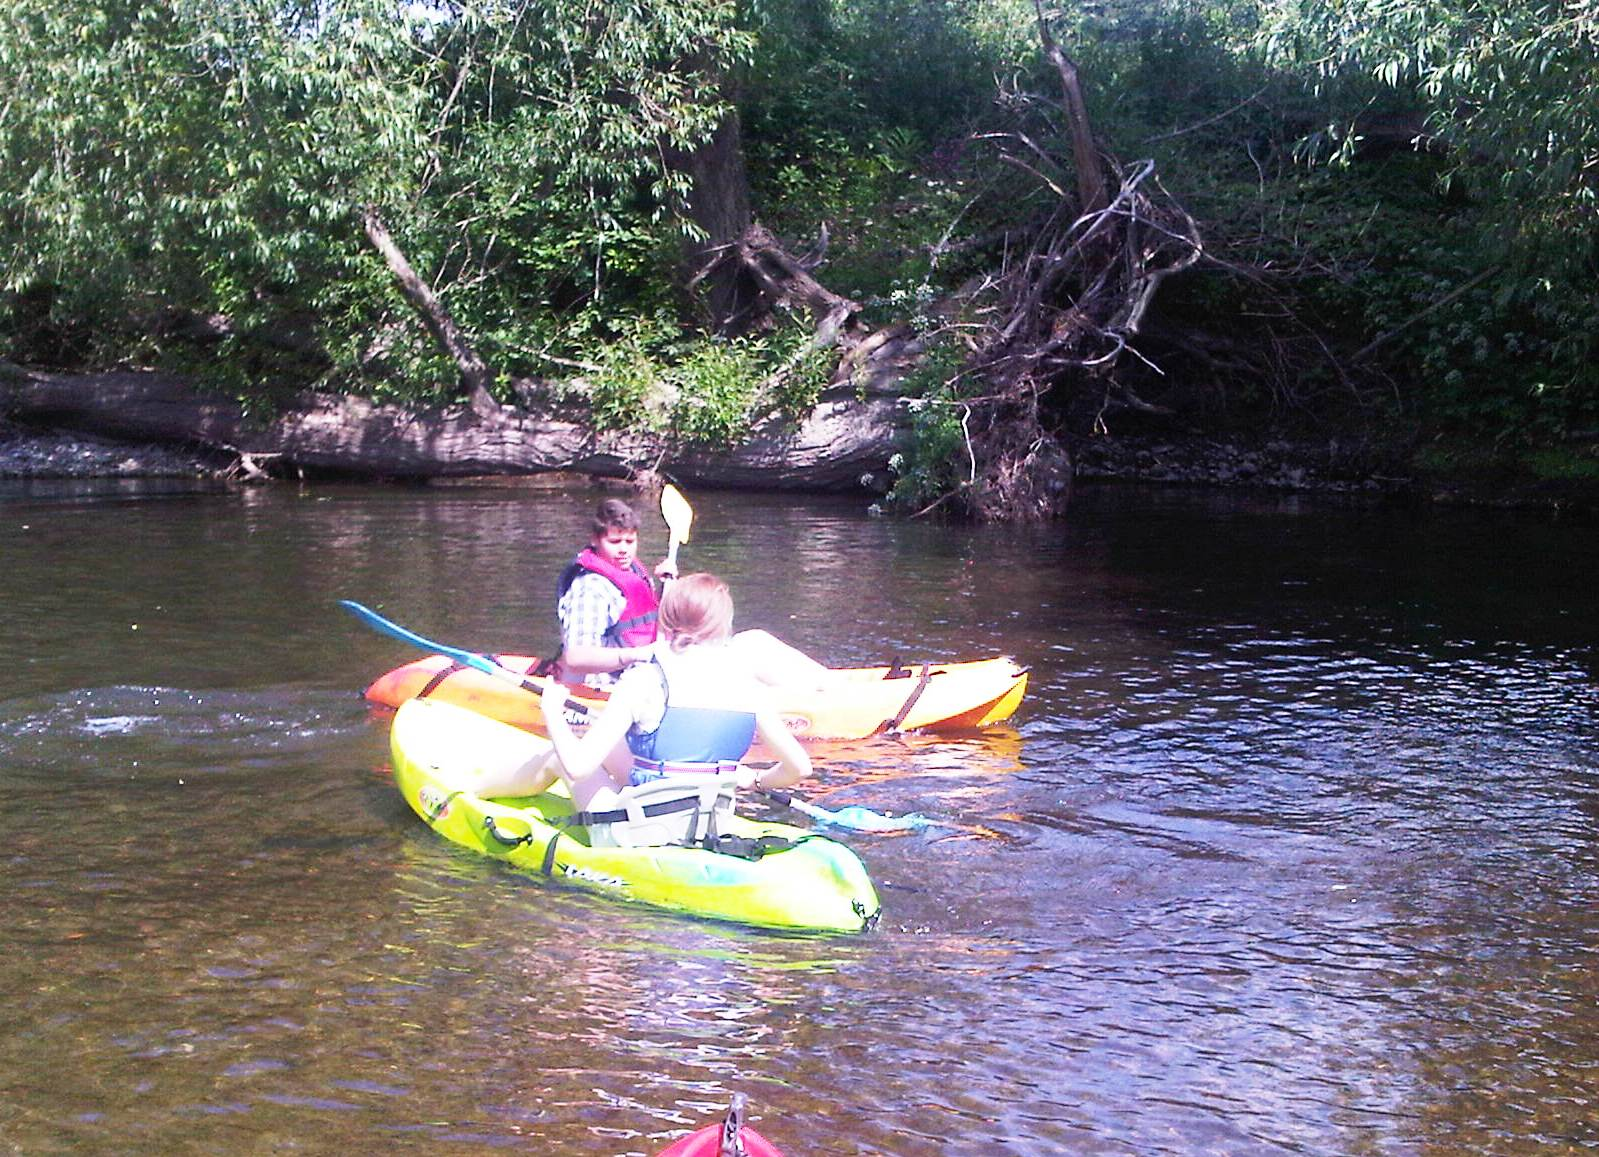 kayaking 22062014 008.jpg